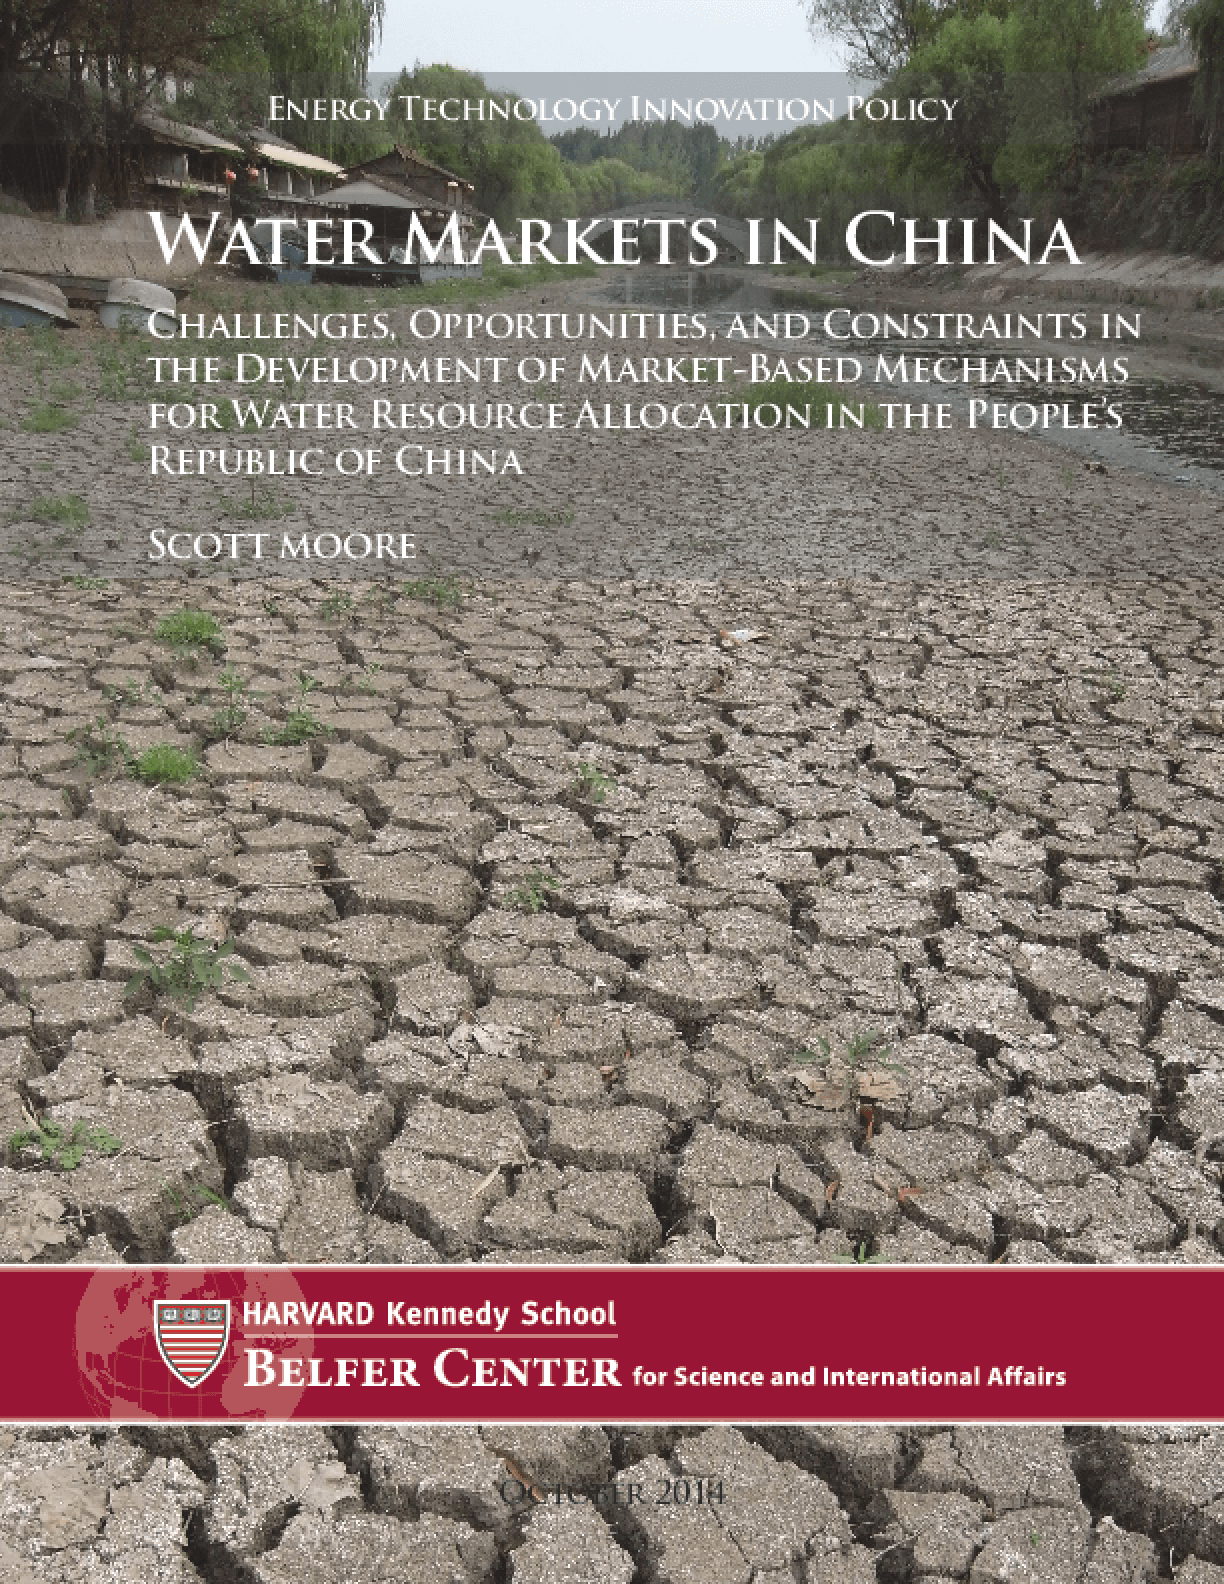 Water Markets in China: Challenges, Opportunities, and Constraints in the Development of Market-Based Mechanisms for Water Resource Allocation in the People's Republic of China